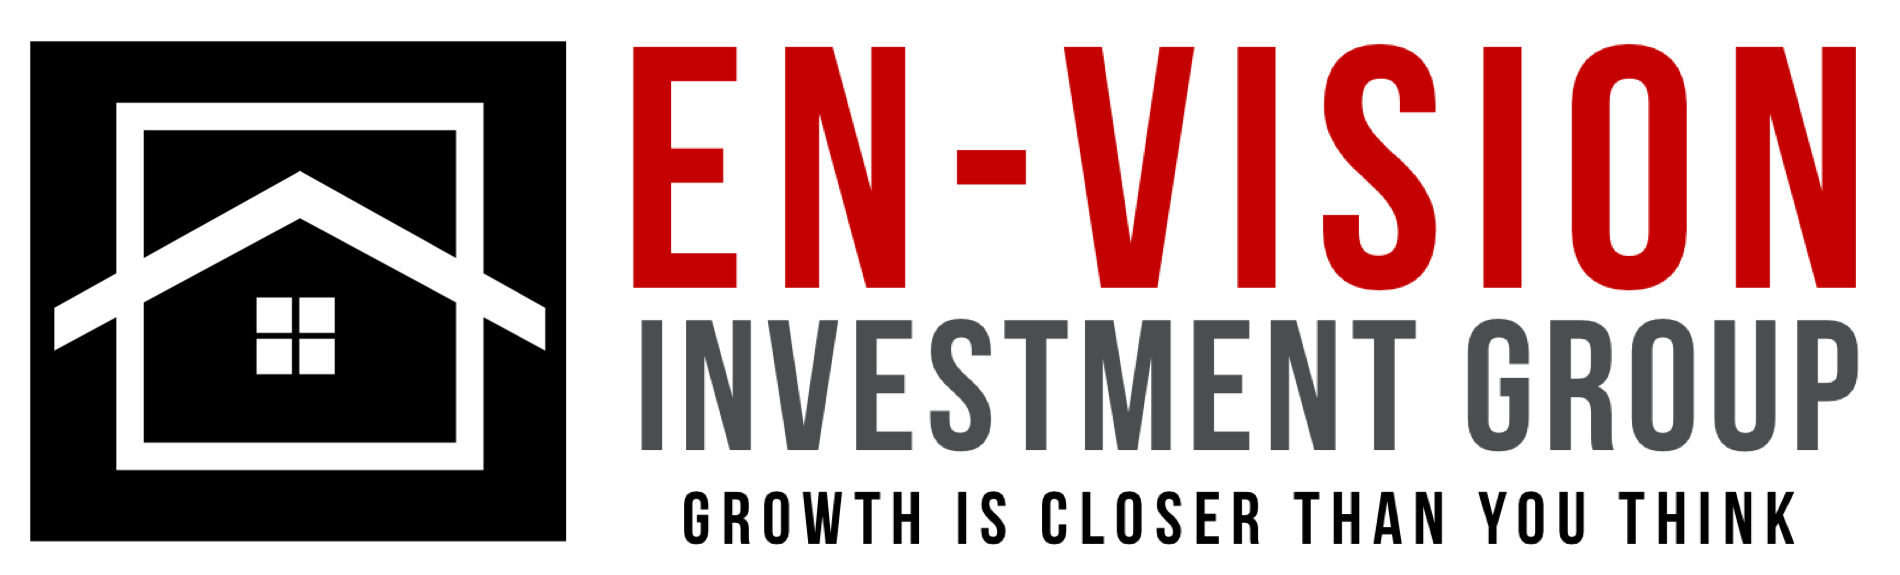 EN-VISION INVESTMENT GROUP logo